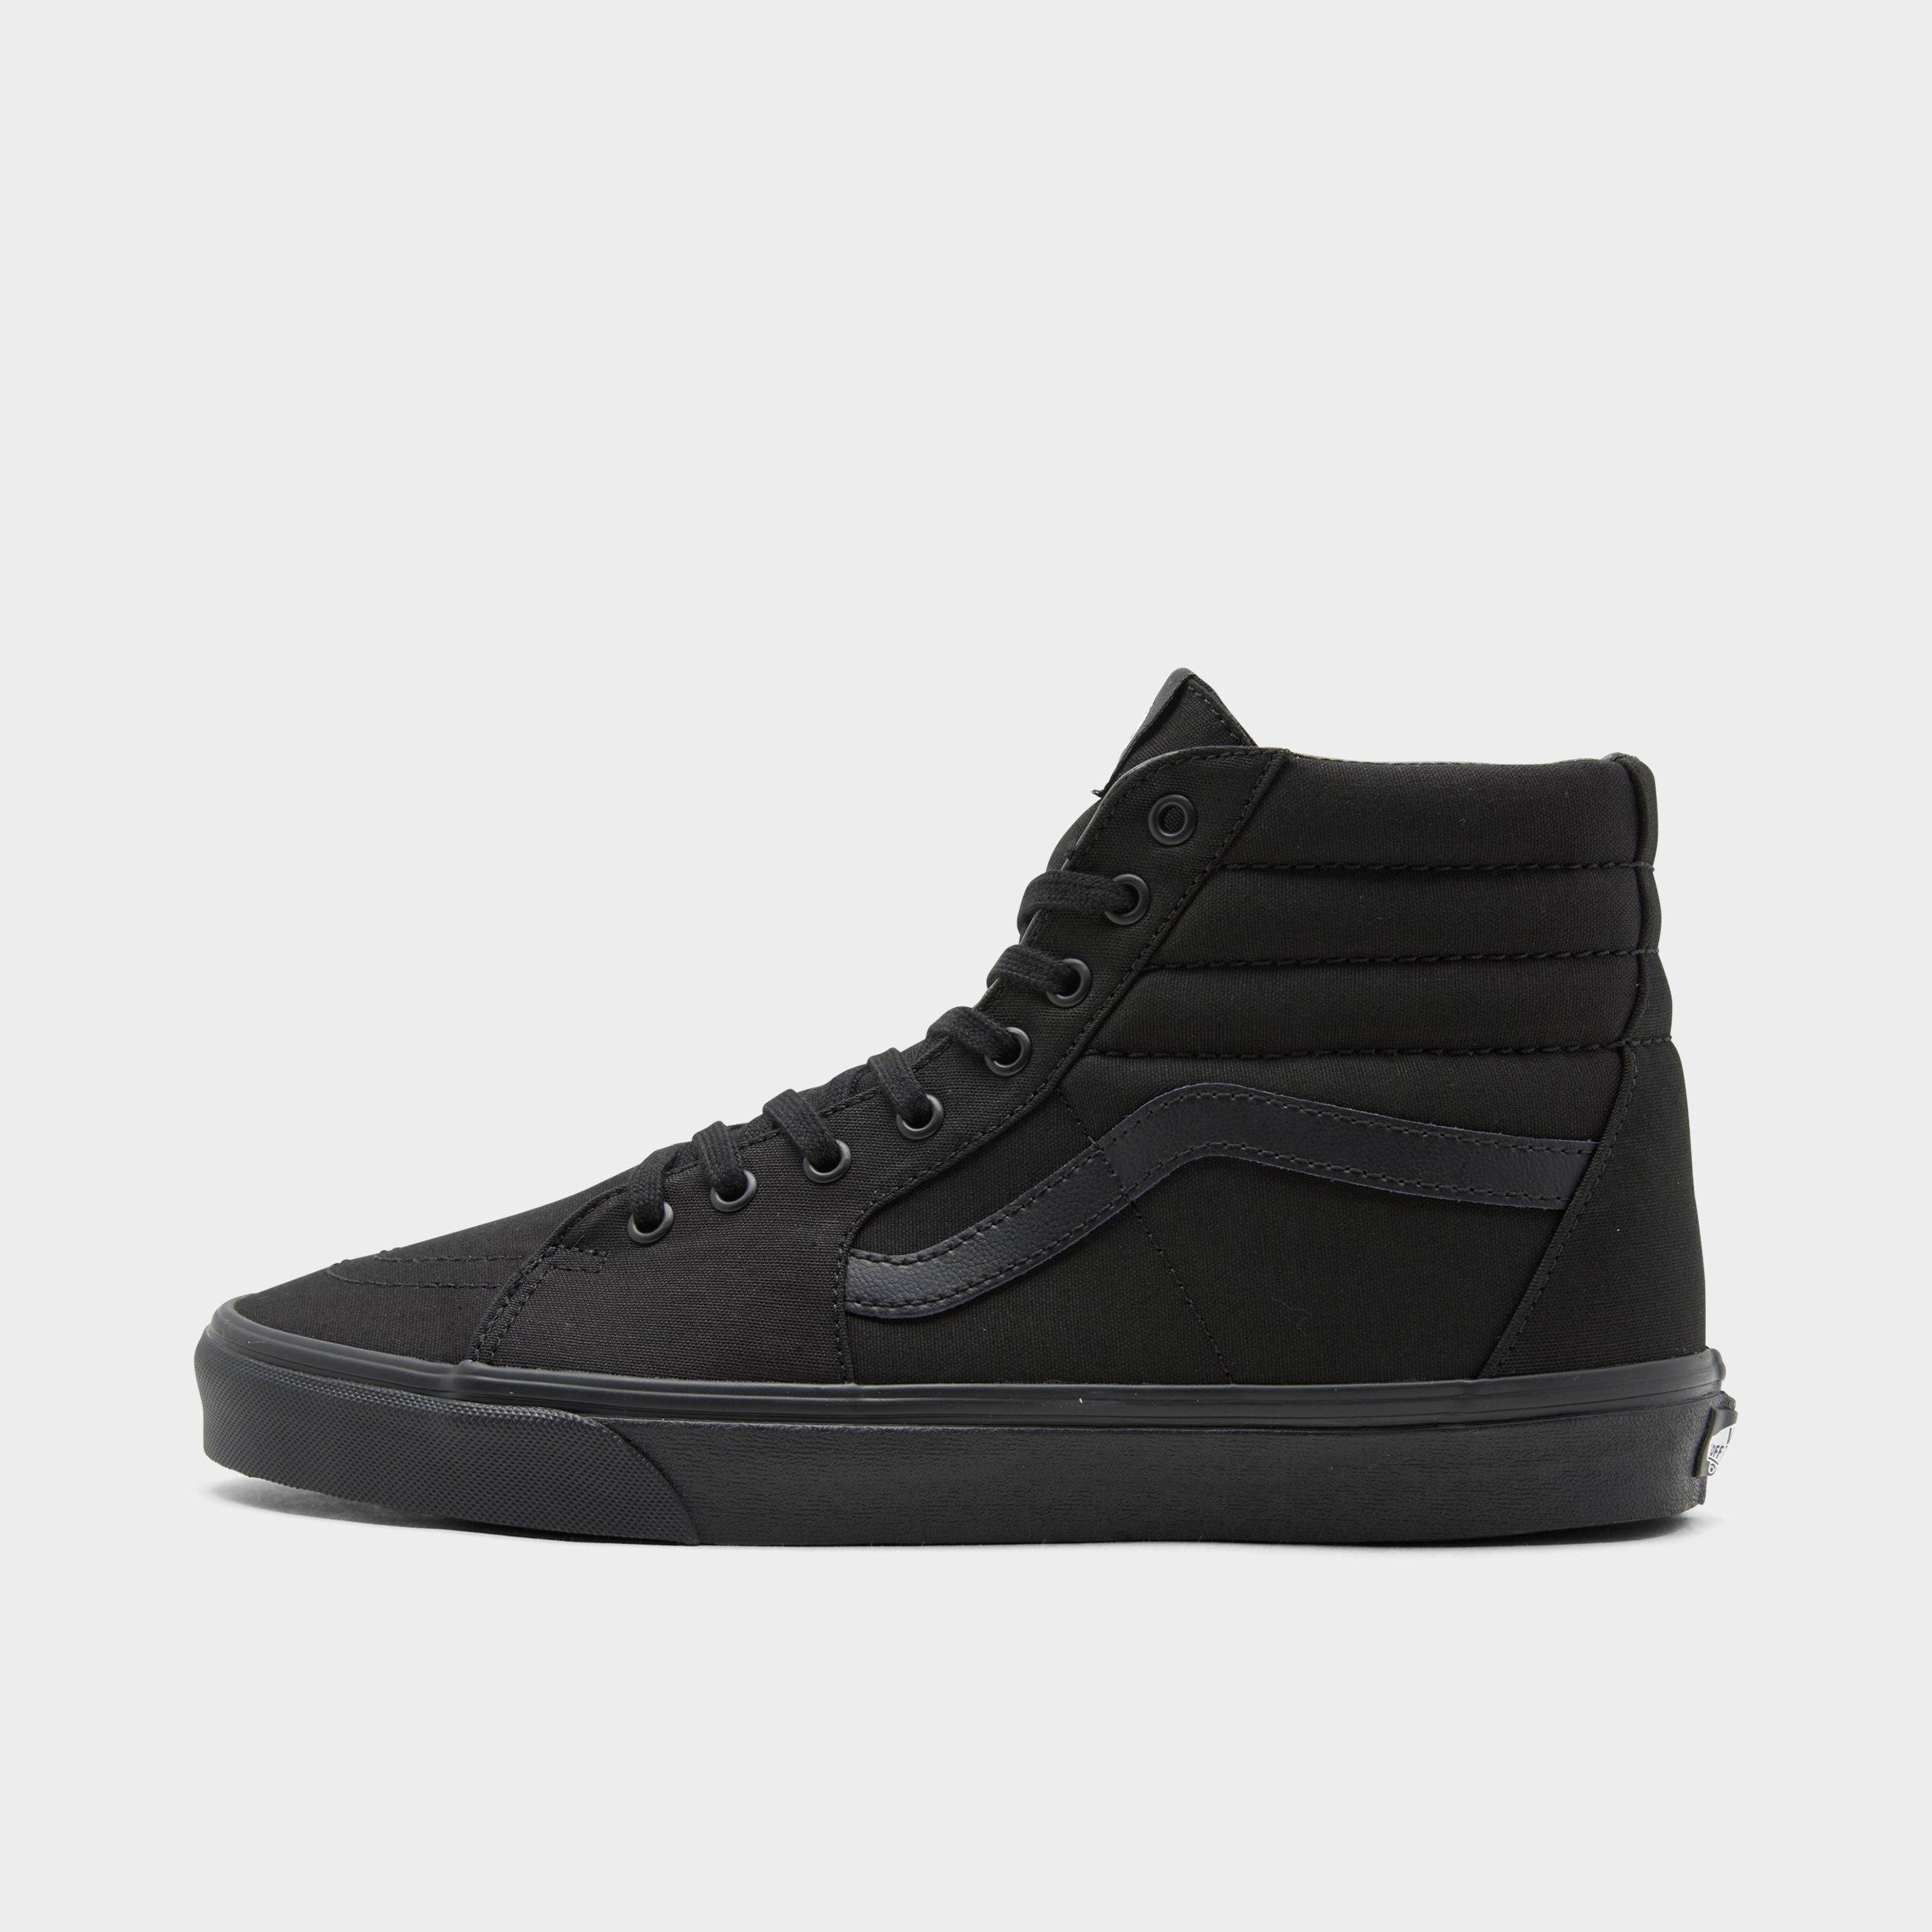 Men's Vans Sk8-Hi Casual Shoes| JD Sports